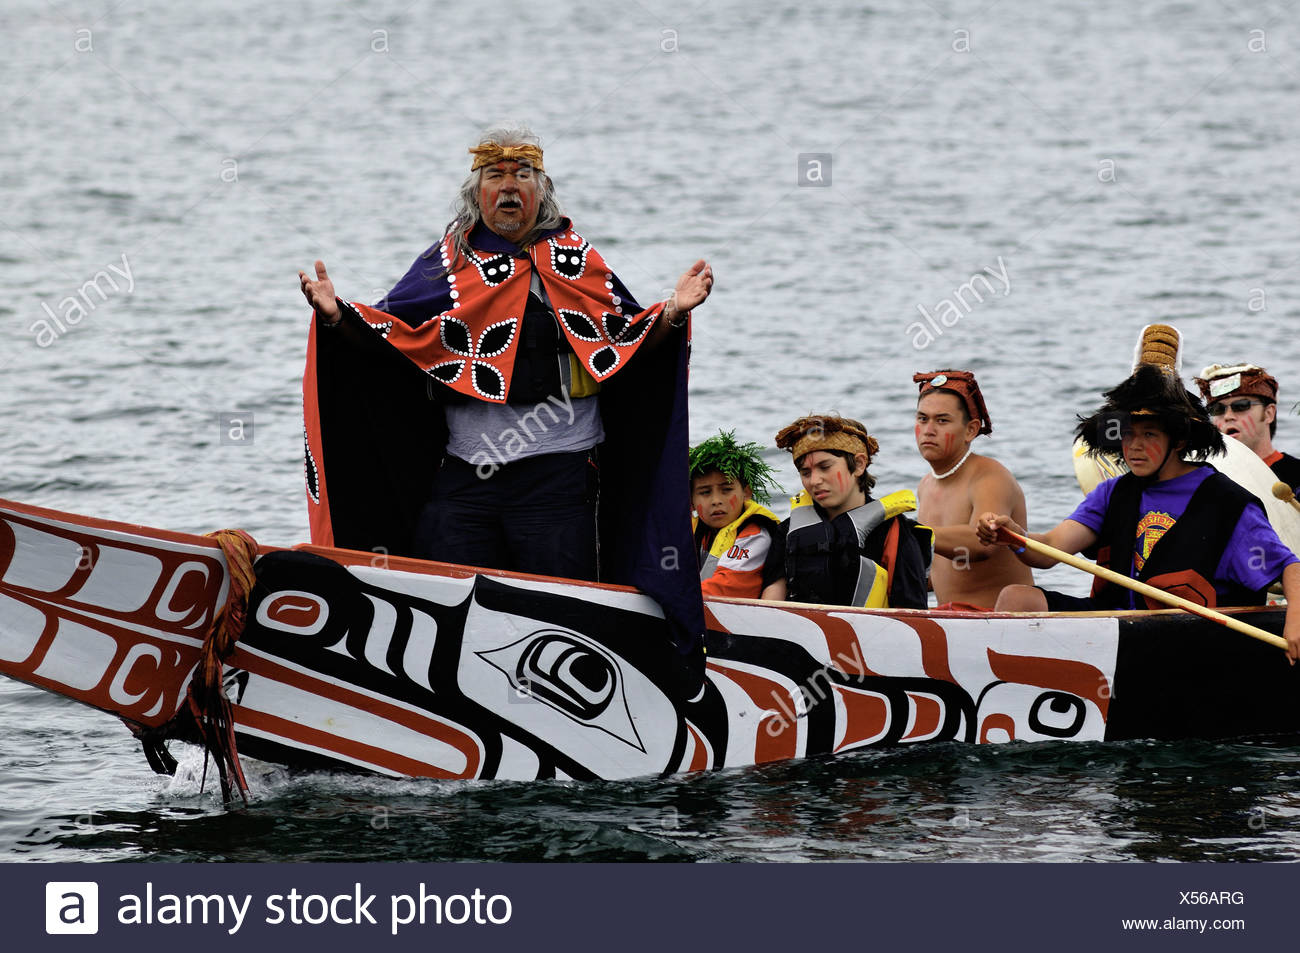 Native man standing at bow of canoe during Tribal Journeys event at the North American Indigenous Games in Duncan. - Stock Image